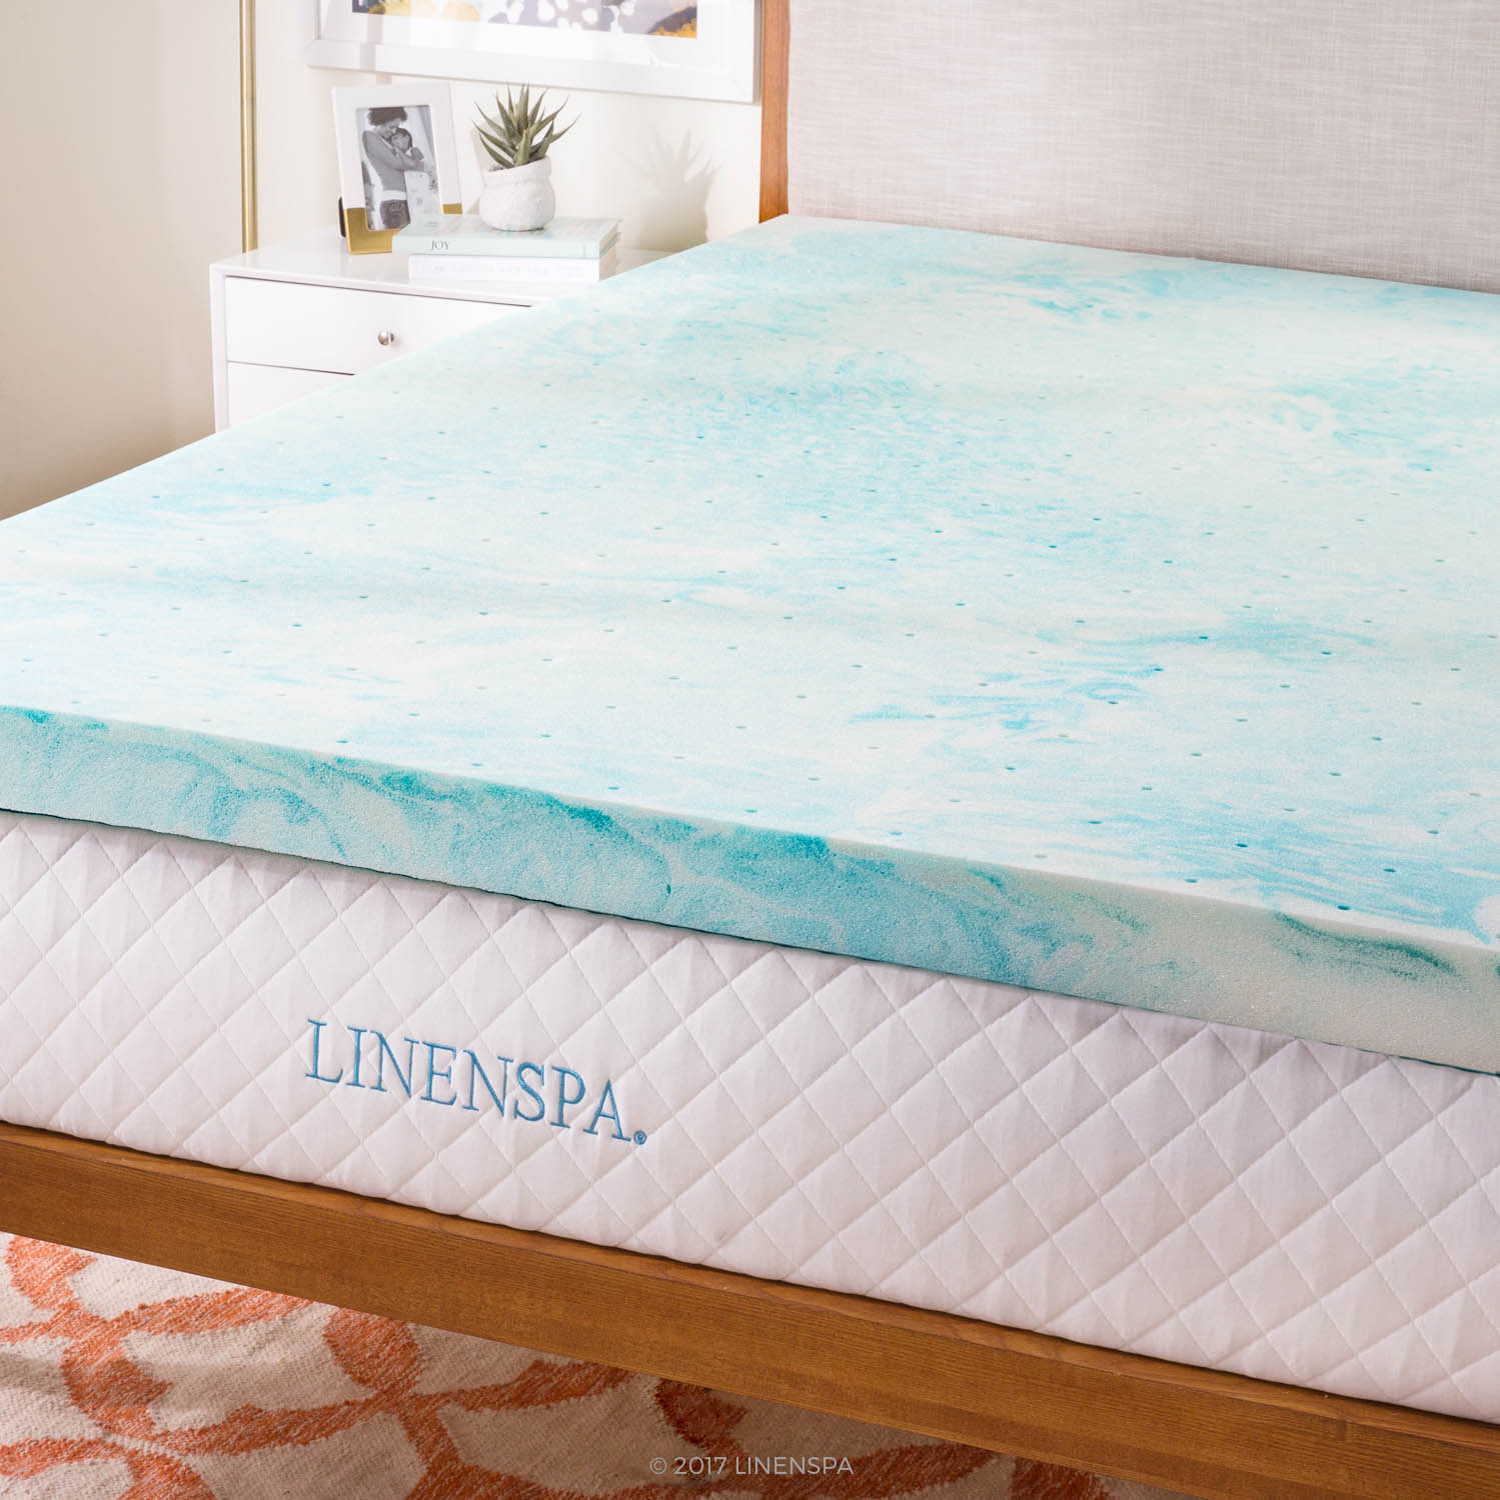 Linenspa 3 Inch Plush Gel Swirl Memory Foam Mattress Topper